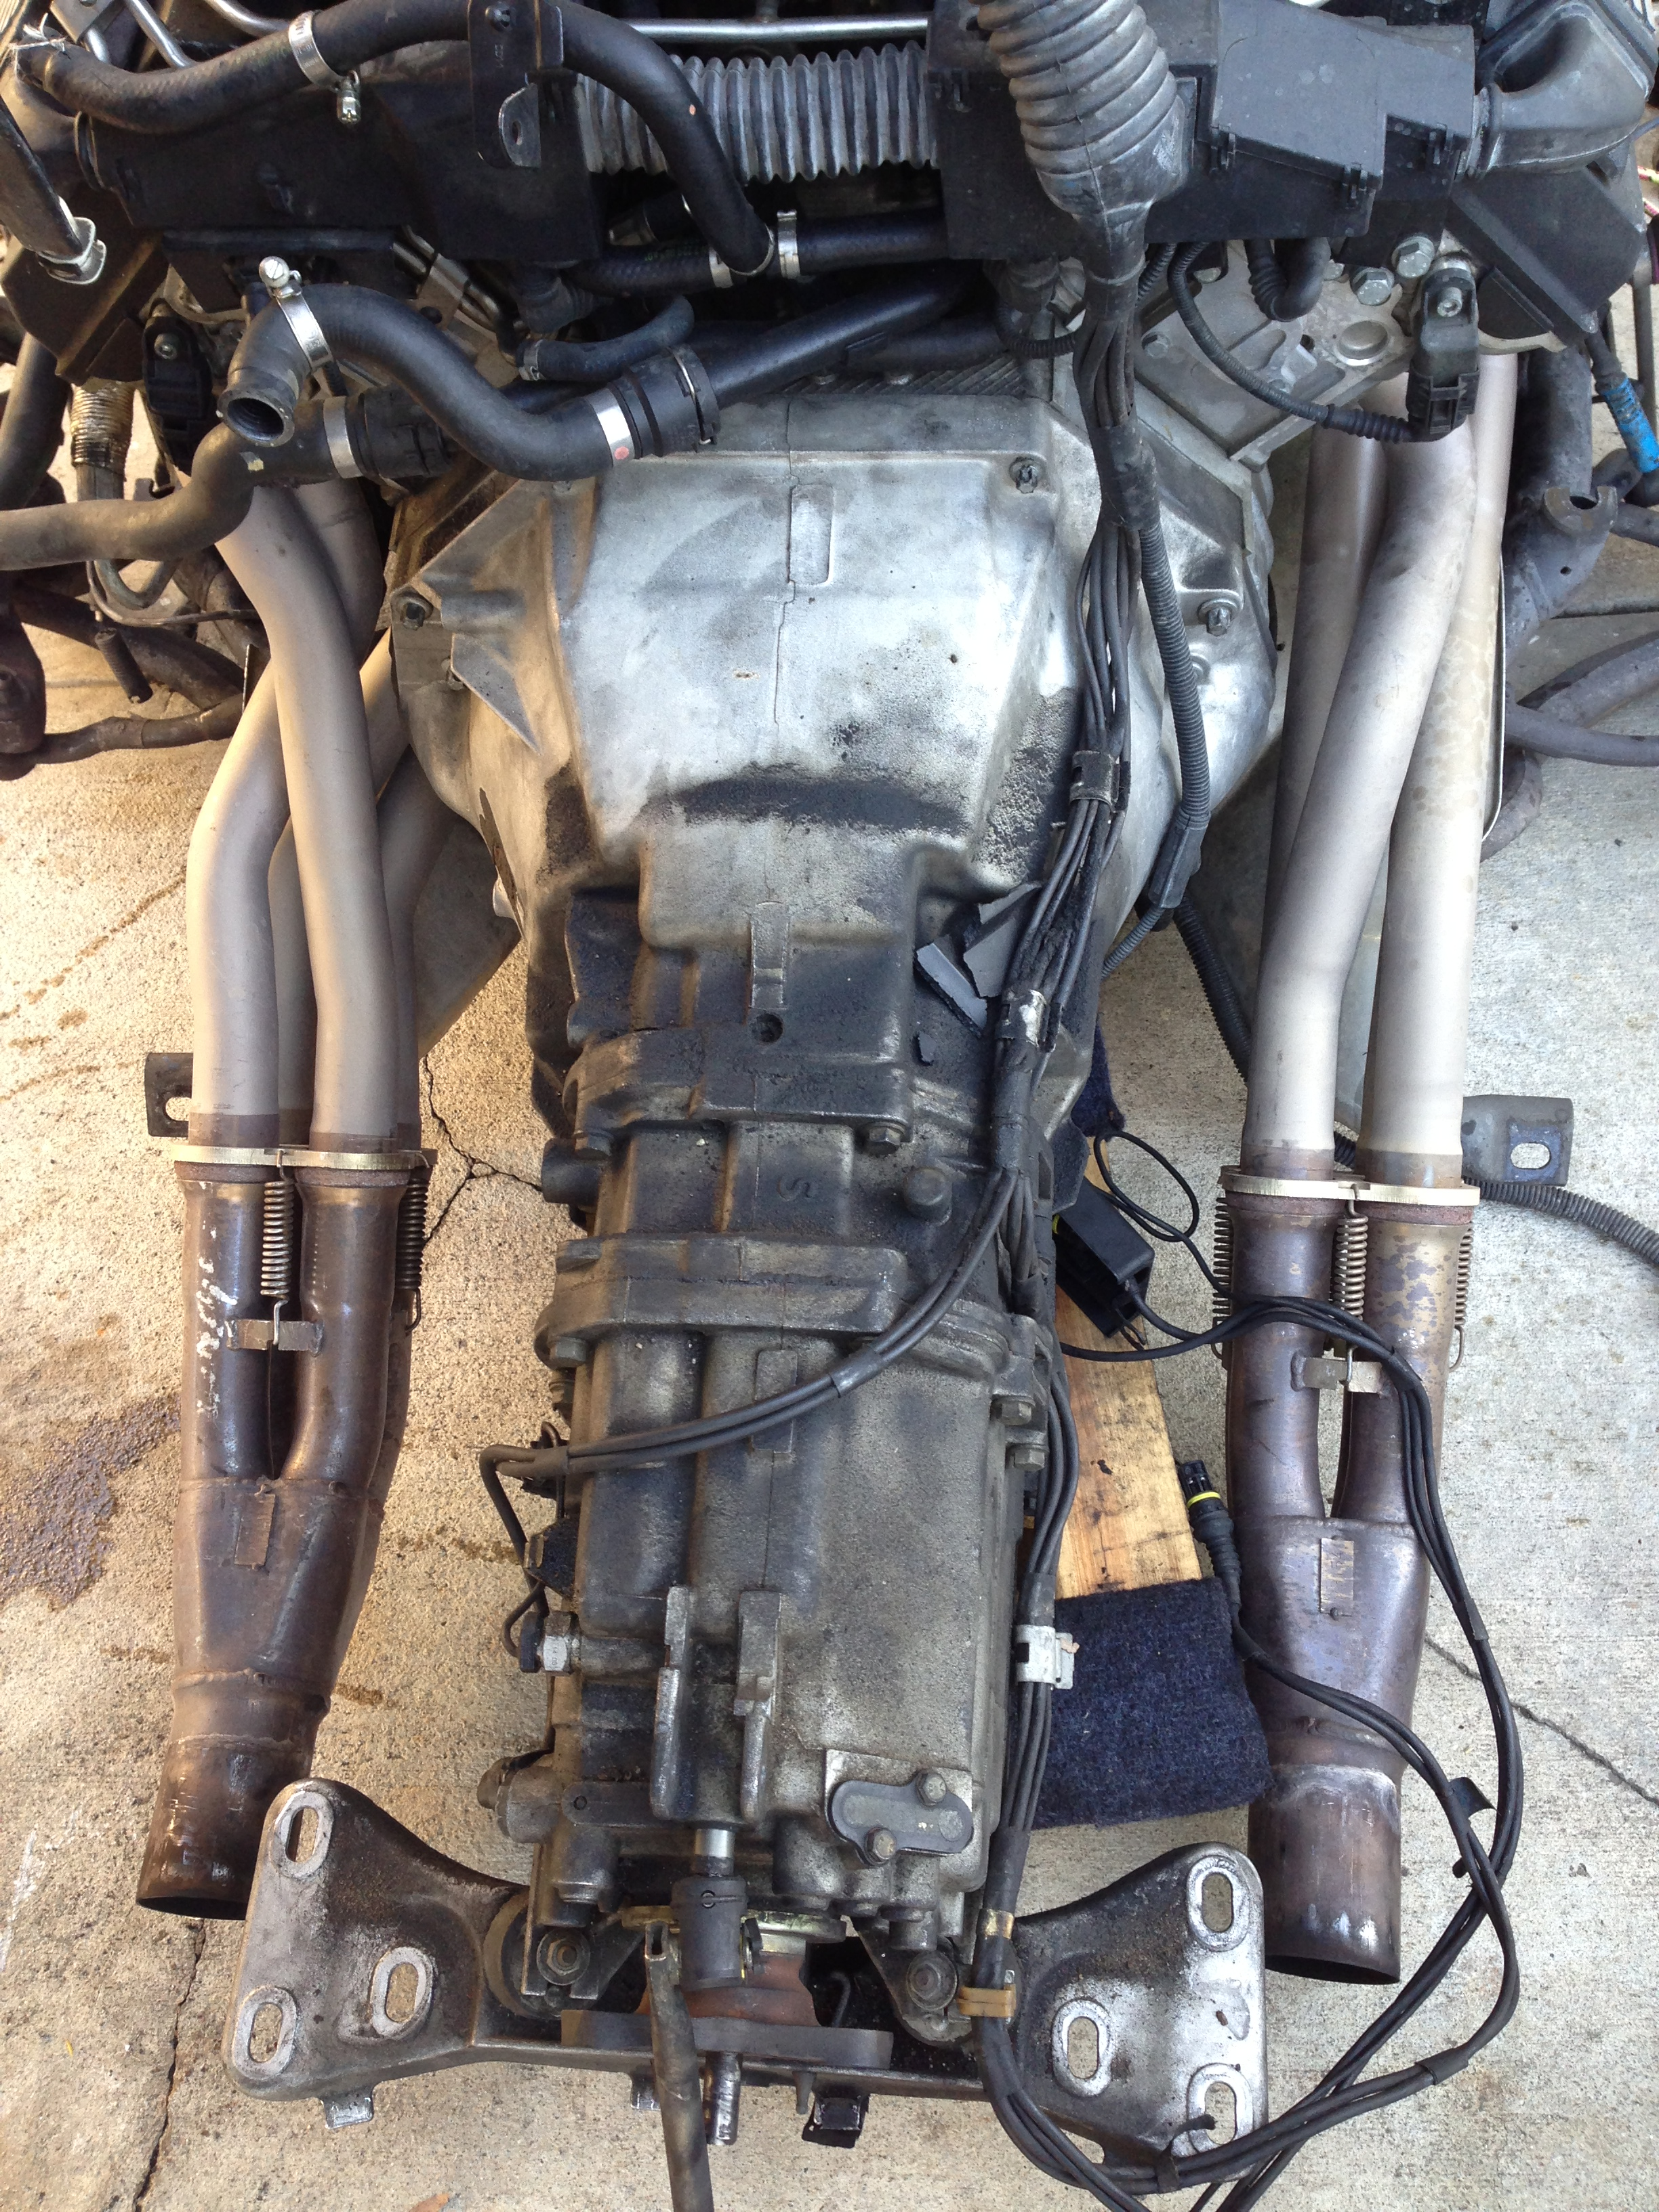 Jet Hot Coated Supersprint headers w/ connecting & cat delete pipes-img_1258.jpg